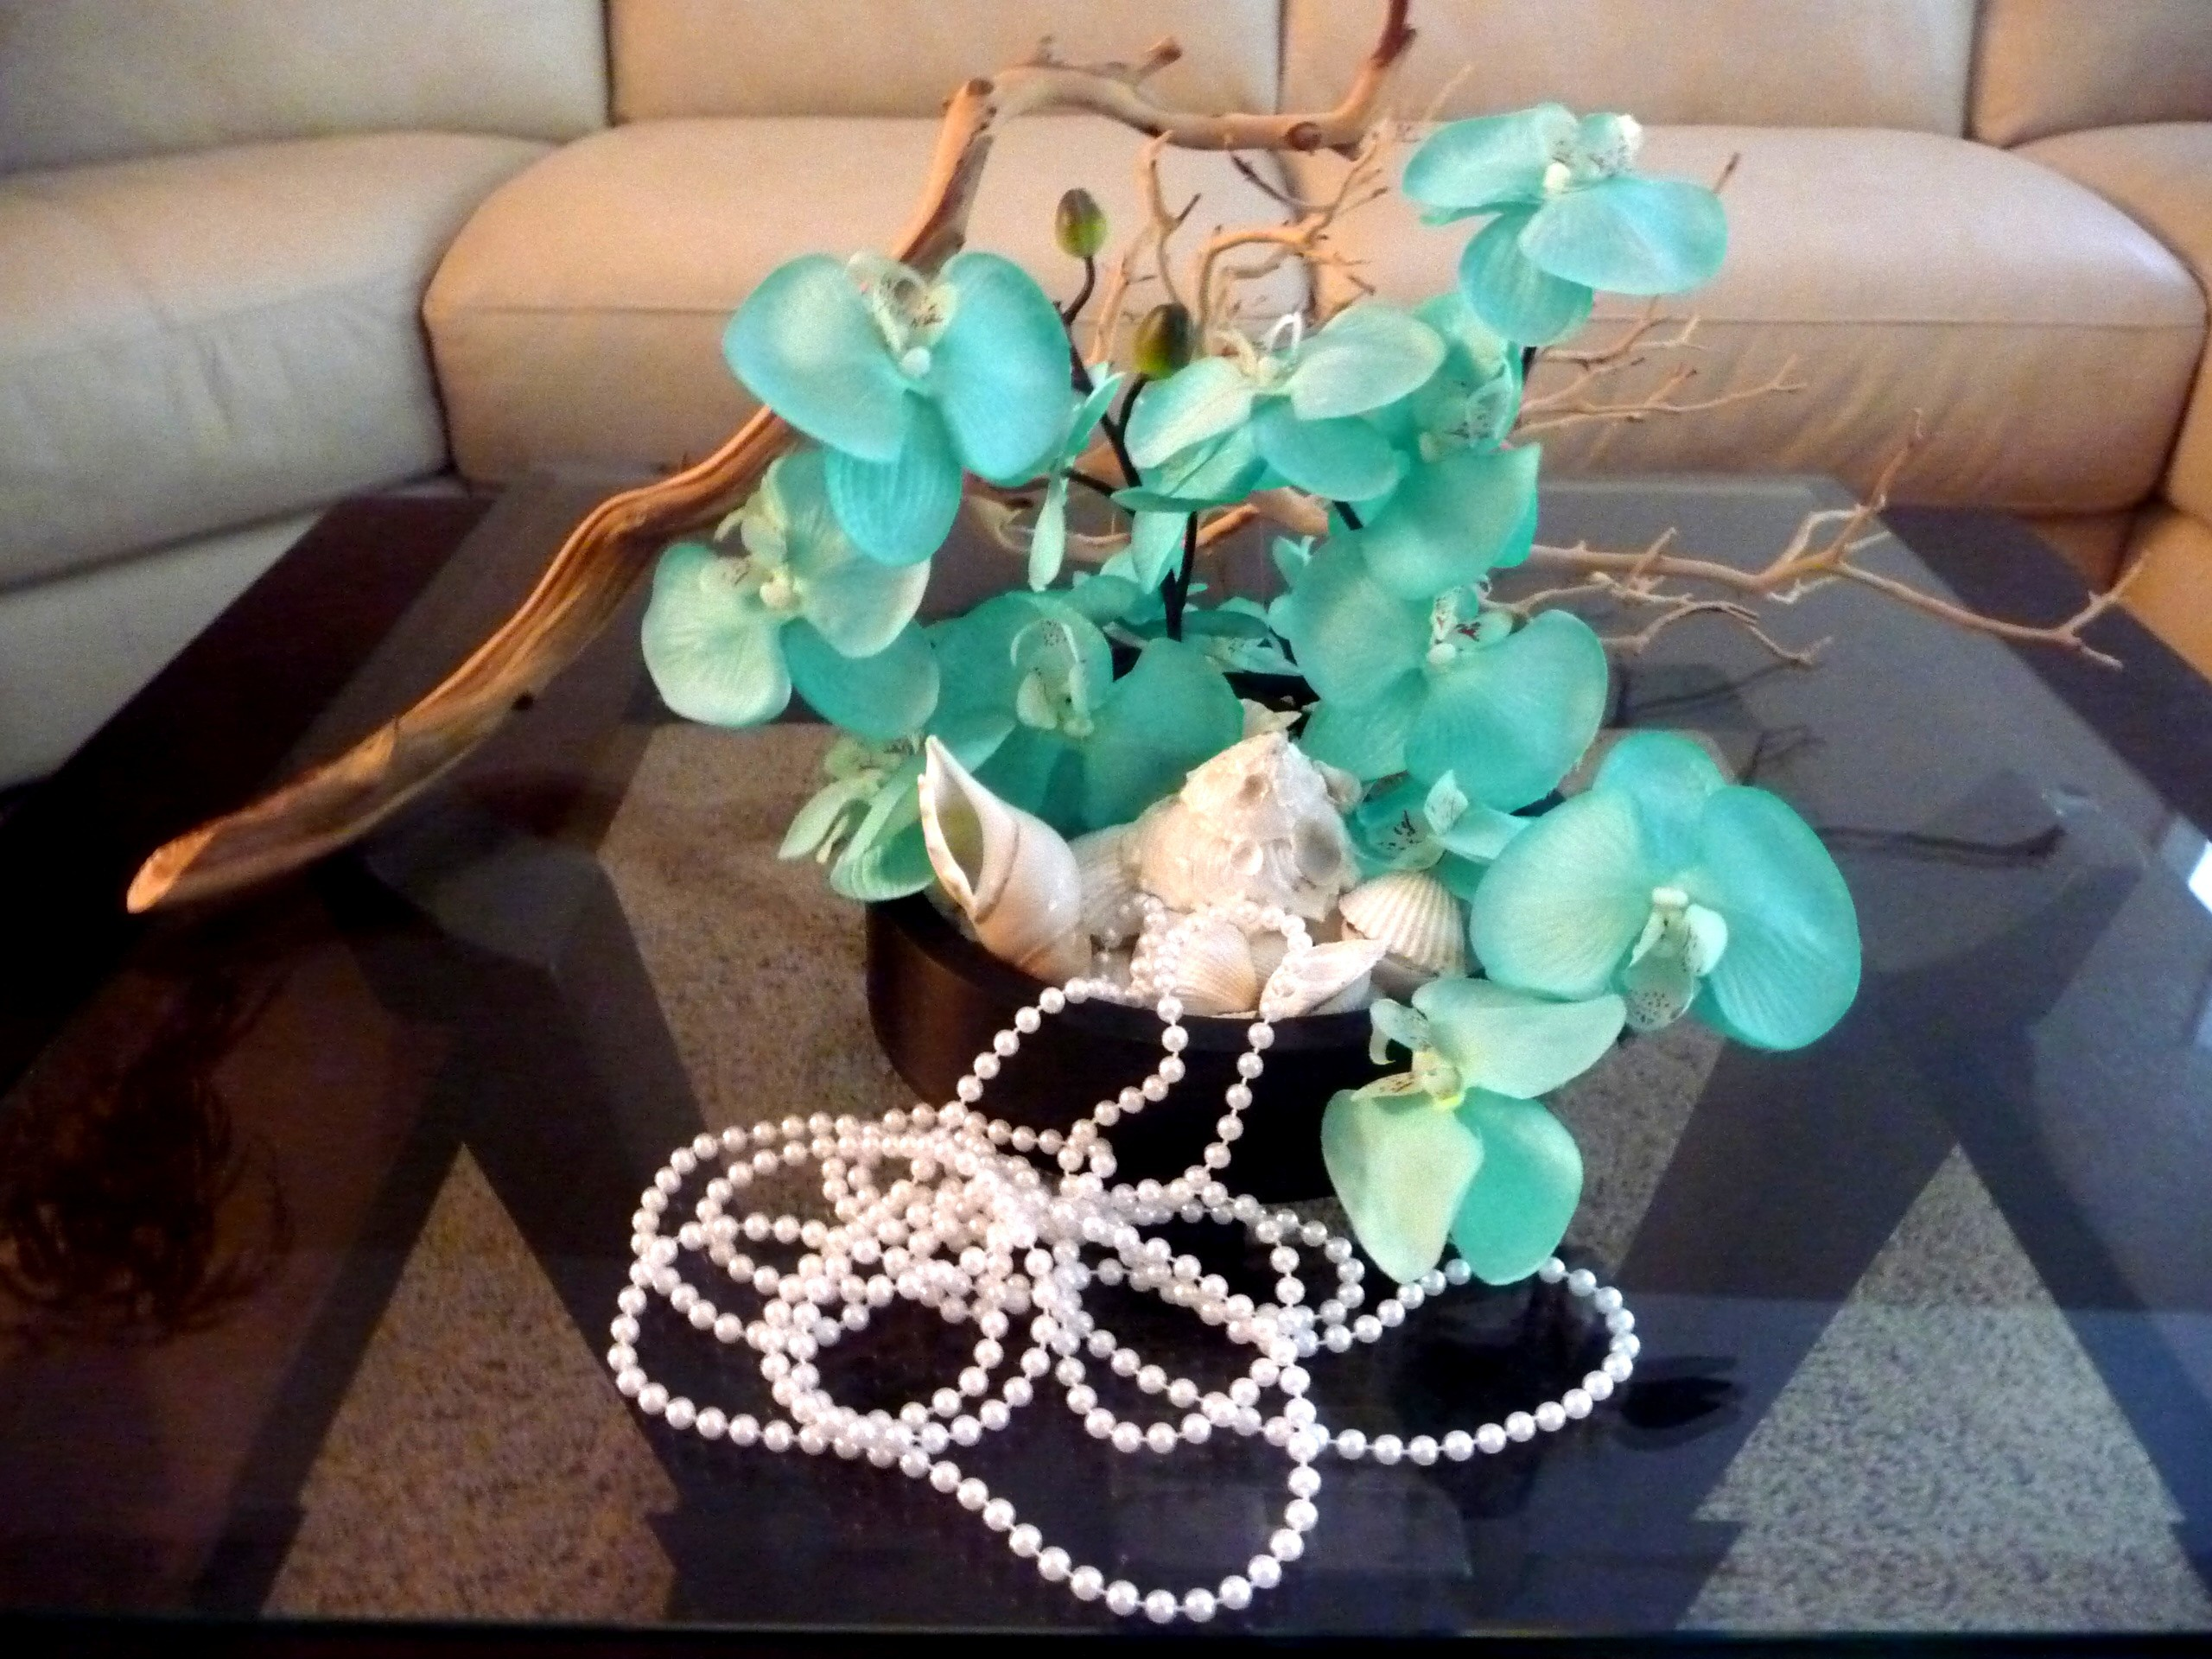 Ceremony, Inspiration, Reception, Flowers & Decor, white, blue, Ceremony Flowers, Centerpieces, Flowers, Centerpiece, Wedding, Bridal, Teal, Board, Turquoise, Silk, Savannah event decor